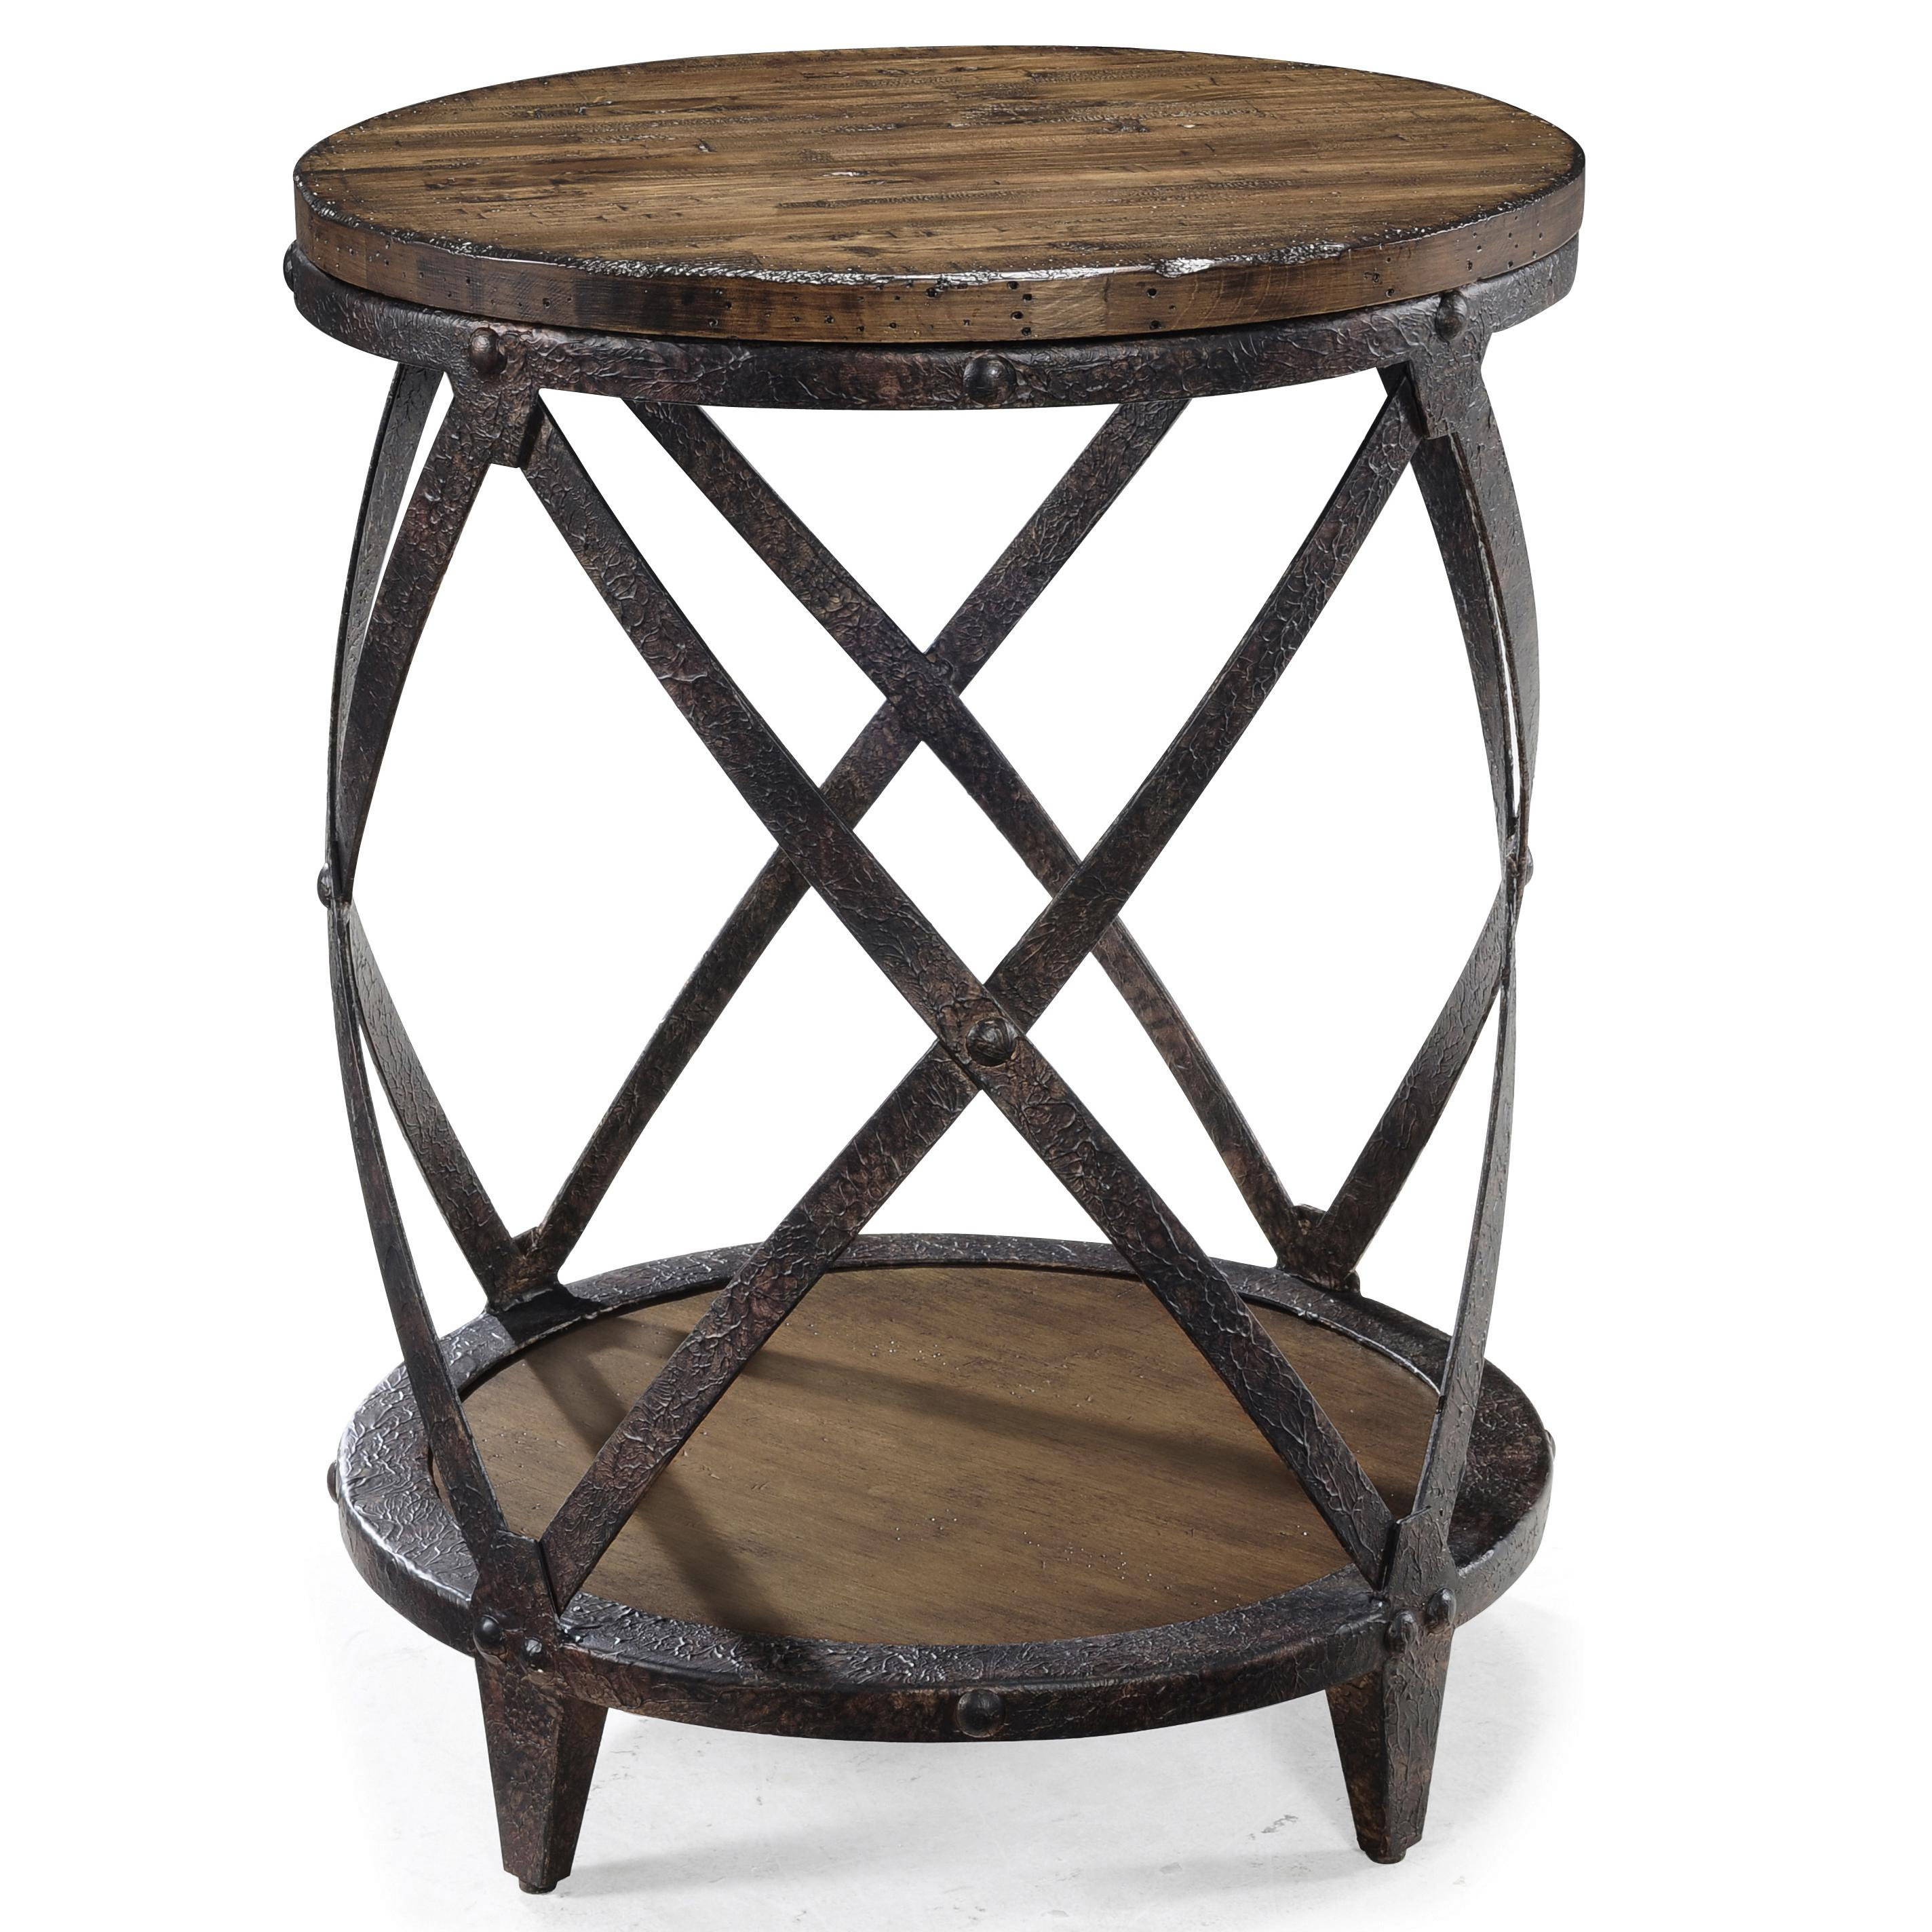 vintage trunk furniture the outrageous beautiful wood end round and metal side table with storage tables designs cat litter house long thin coffee half circle small chairside